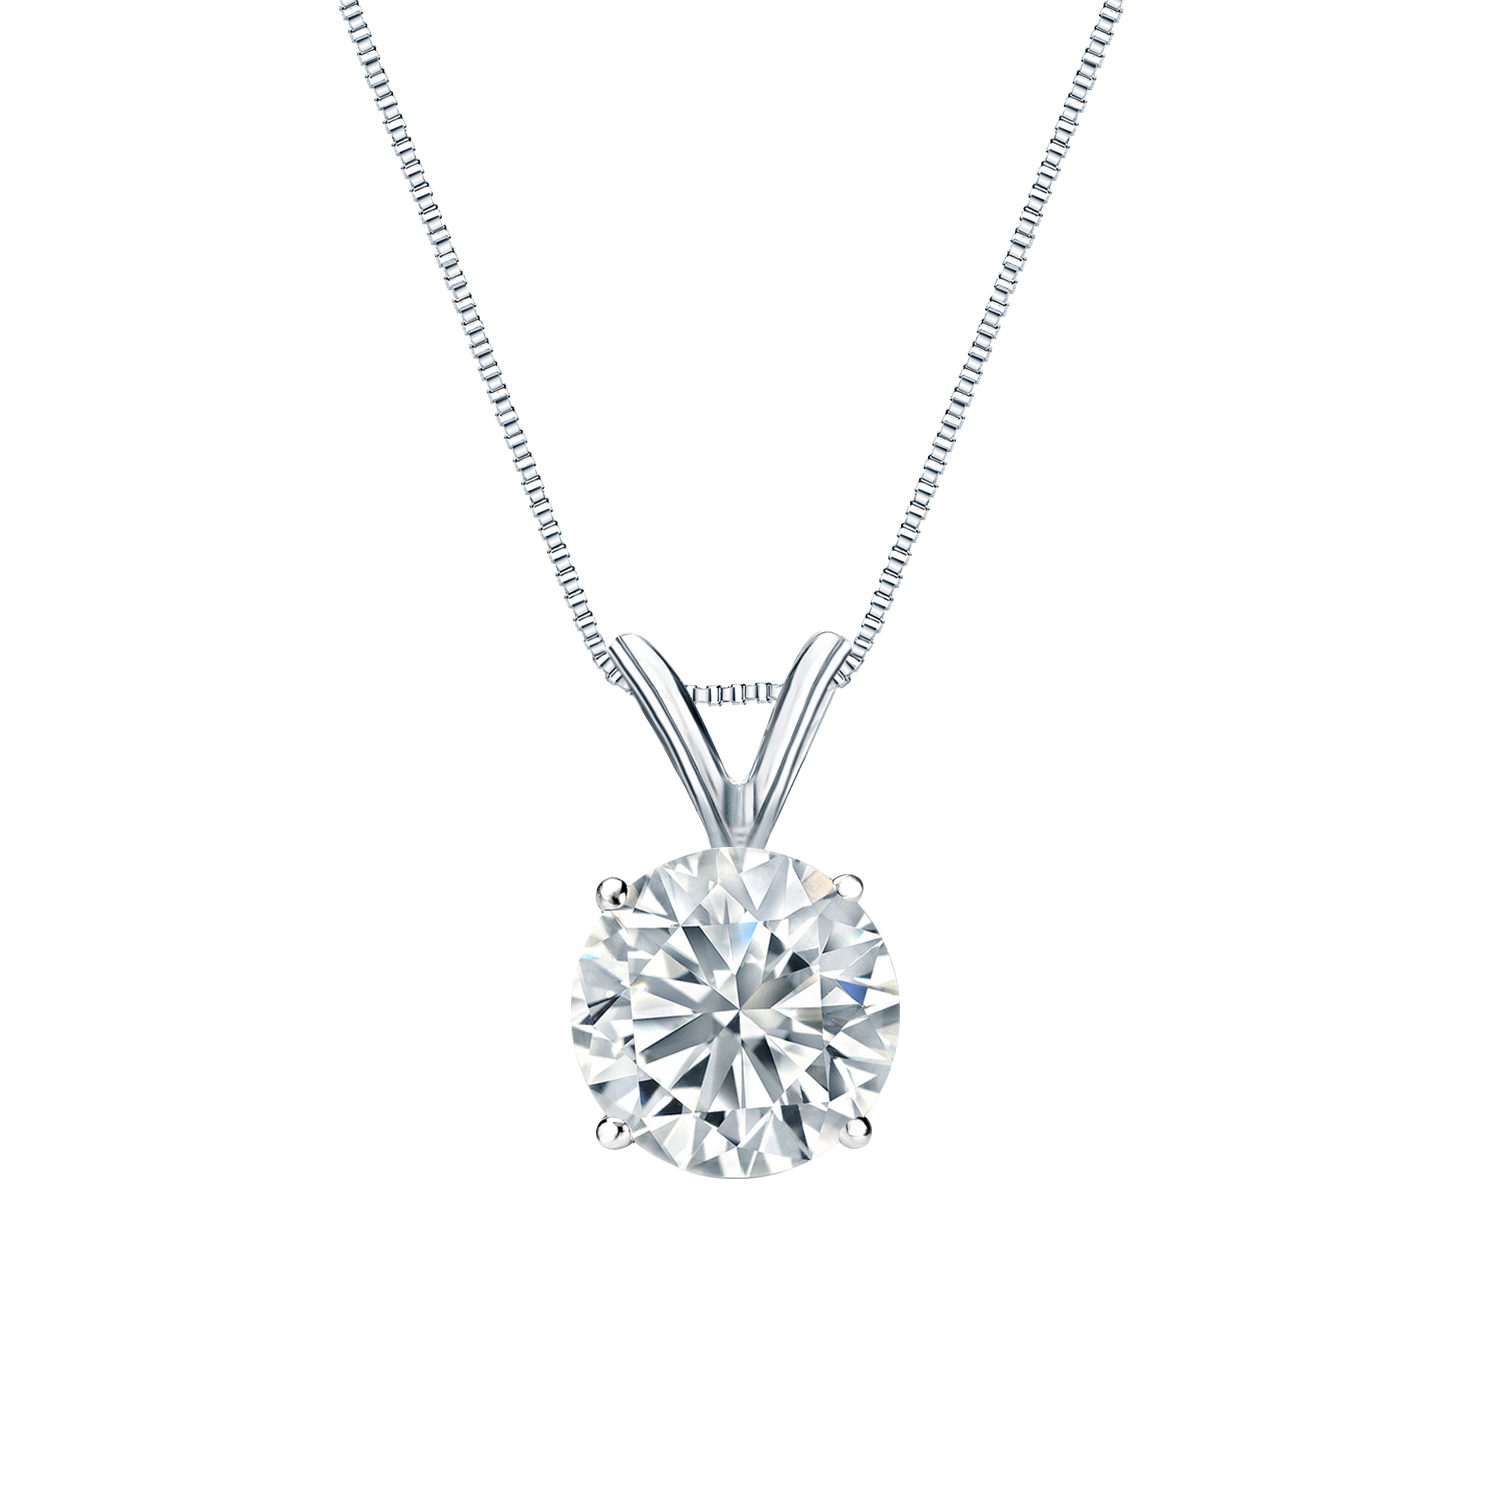 Certified 0.38 ct. tw. Round Diamond Solitaire Pendant in 14k White Gold 4-Prong Basket (I-J, I1)